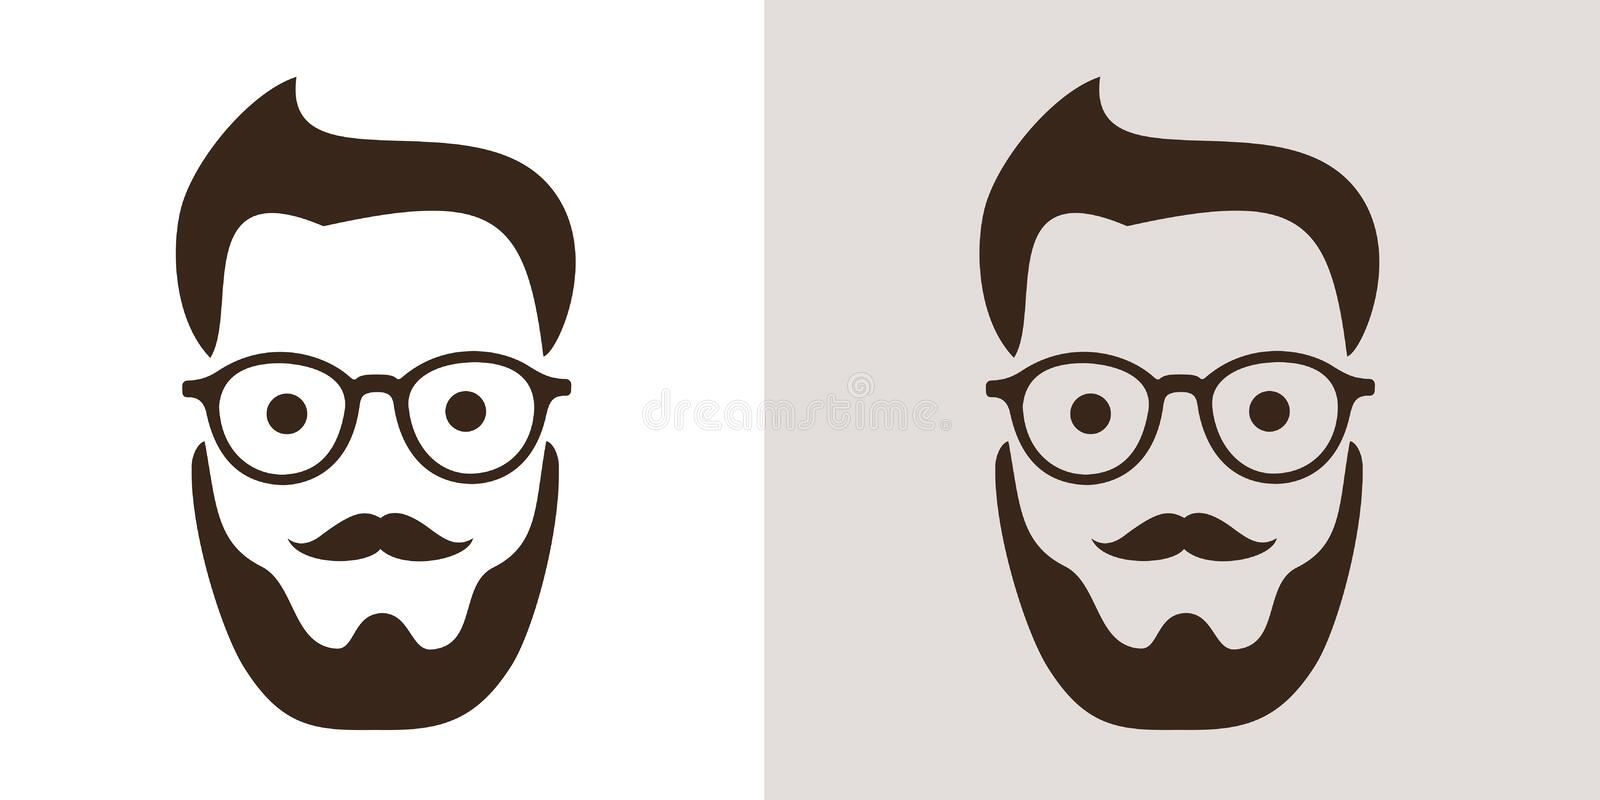 Hipster fashion - man with retro vintage glasses and stylish haircut. Style and cool look of hipster generation and subculture. Vector illustration royalty free illustration